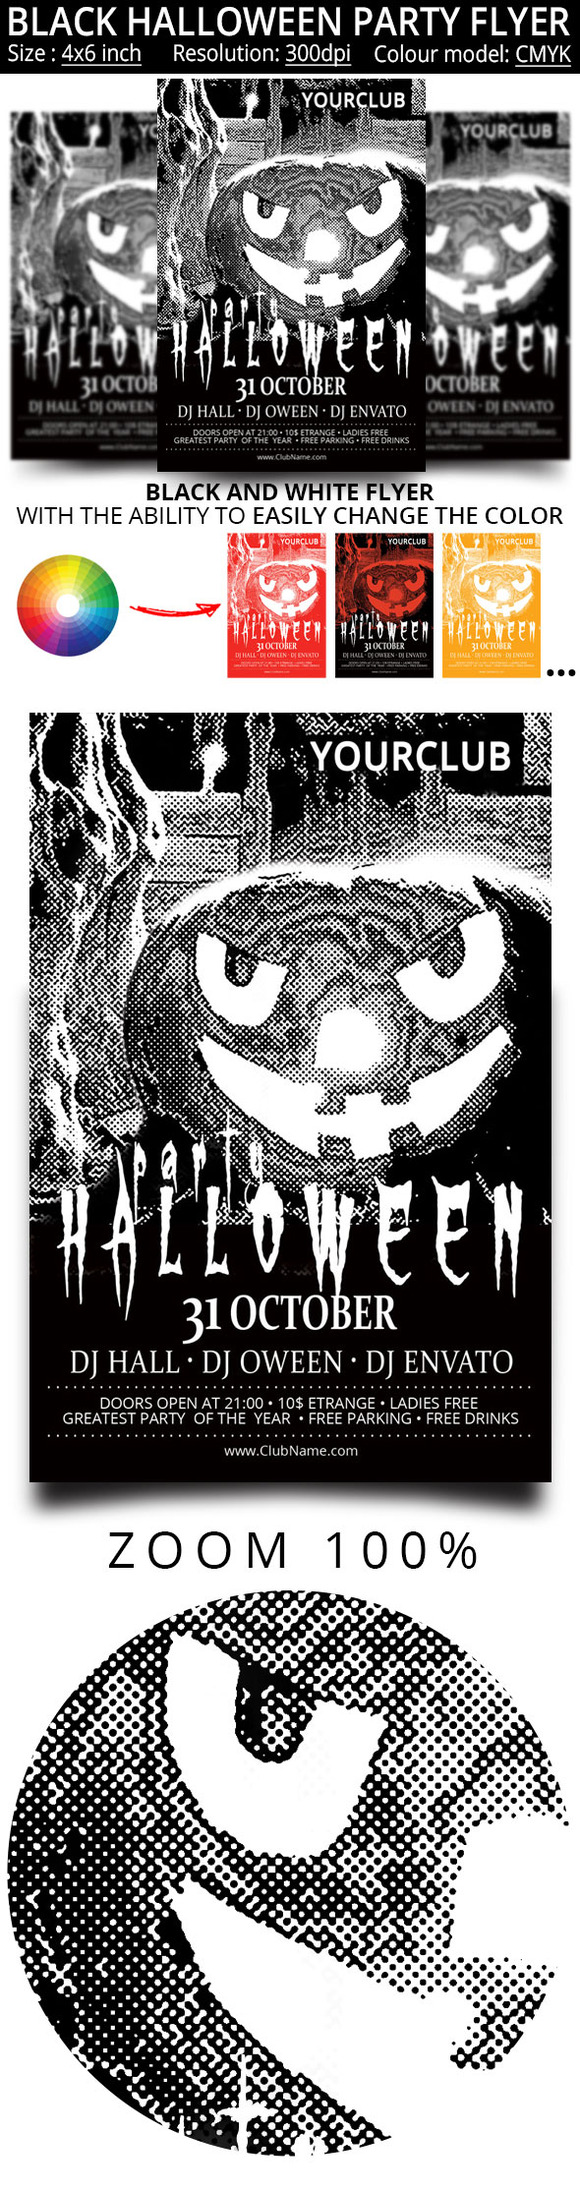 Black and white flyer for the Hallow by oloreon on @creativemarket